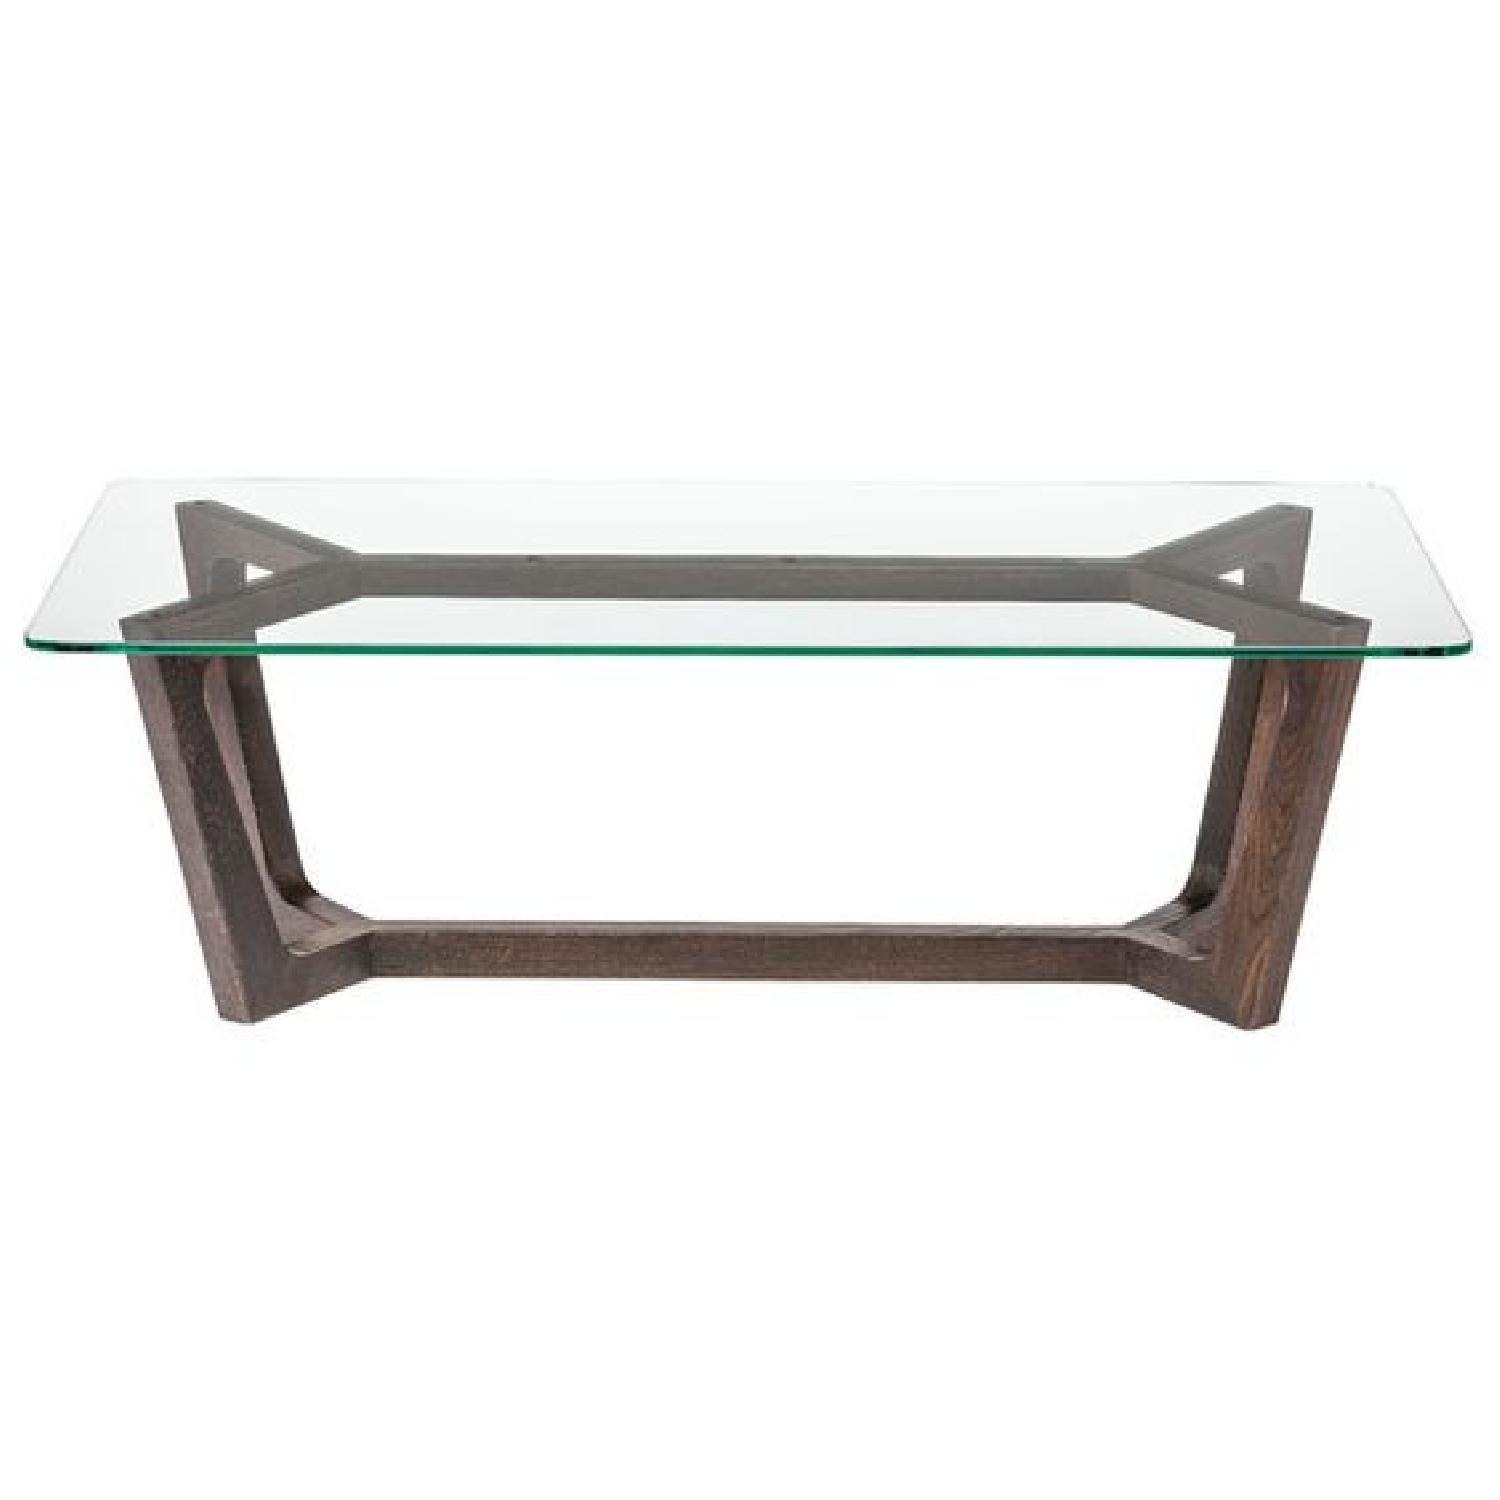 Dwell Studio Coffee Table - image-3